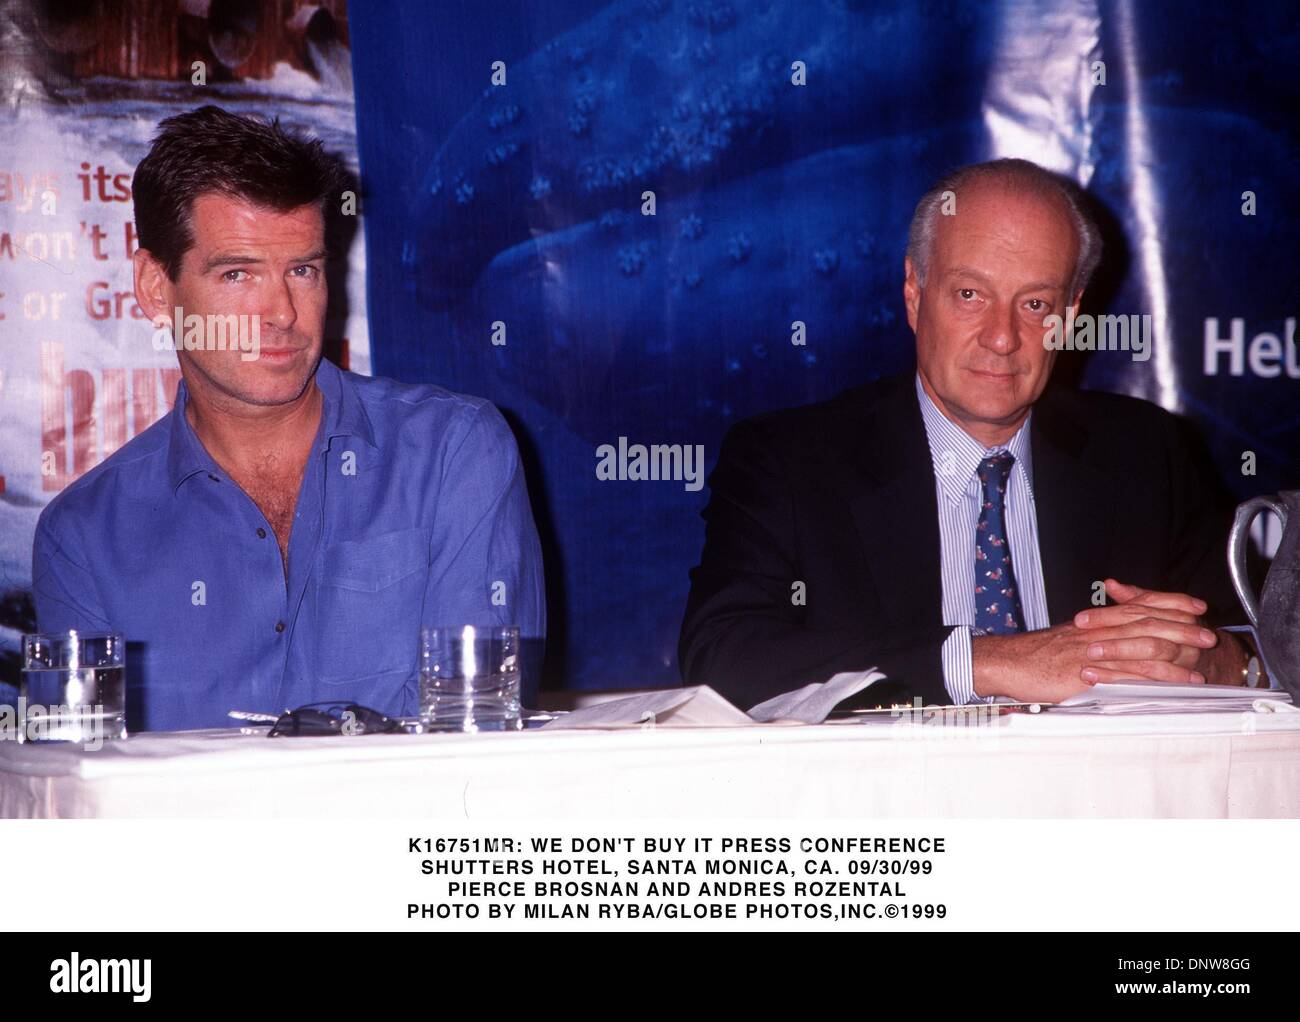 Sept. 30, 1999 - K16751MR: WE DON'T BUY IT PRESS CONFERENCE.SHUTTERS HOTEL, SANTA MONICA, CA.  09/30/99.PIERCE BROSNAN AND ANDRES ROZENTAL. MILAN RYBA/   1999(Credit Image: © Globe Photos/ZUMAPRESS.com) - Stock Image